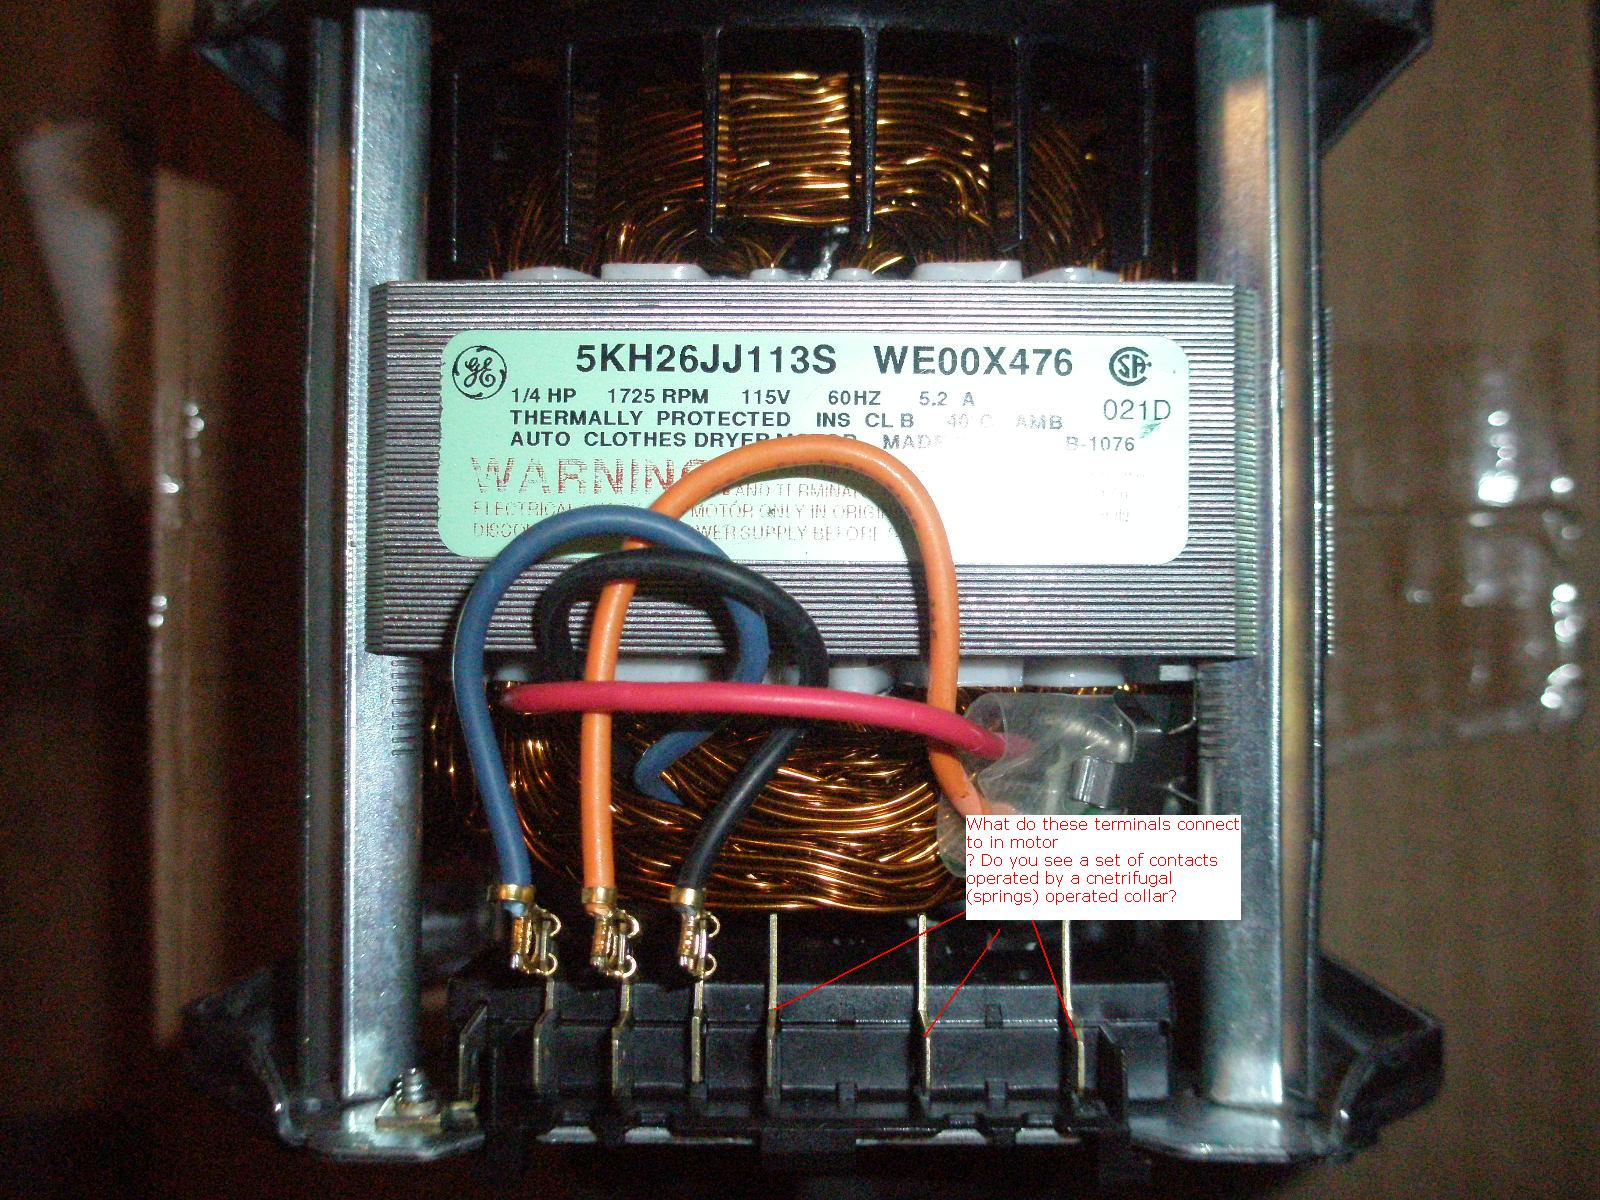 Ge Dryer Motor Wiring Diagram 29 Images Whirlpool 279827 Drive Appliancepartsproscom 2010 12 31 200751 193447 New I Have A Replacement We00x476 For My